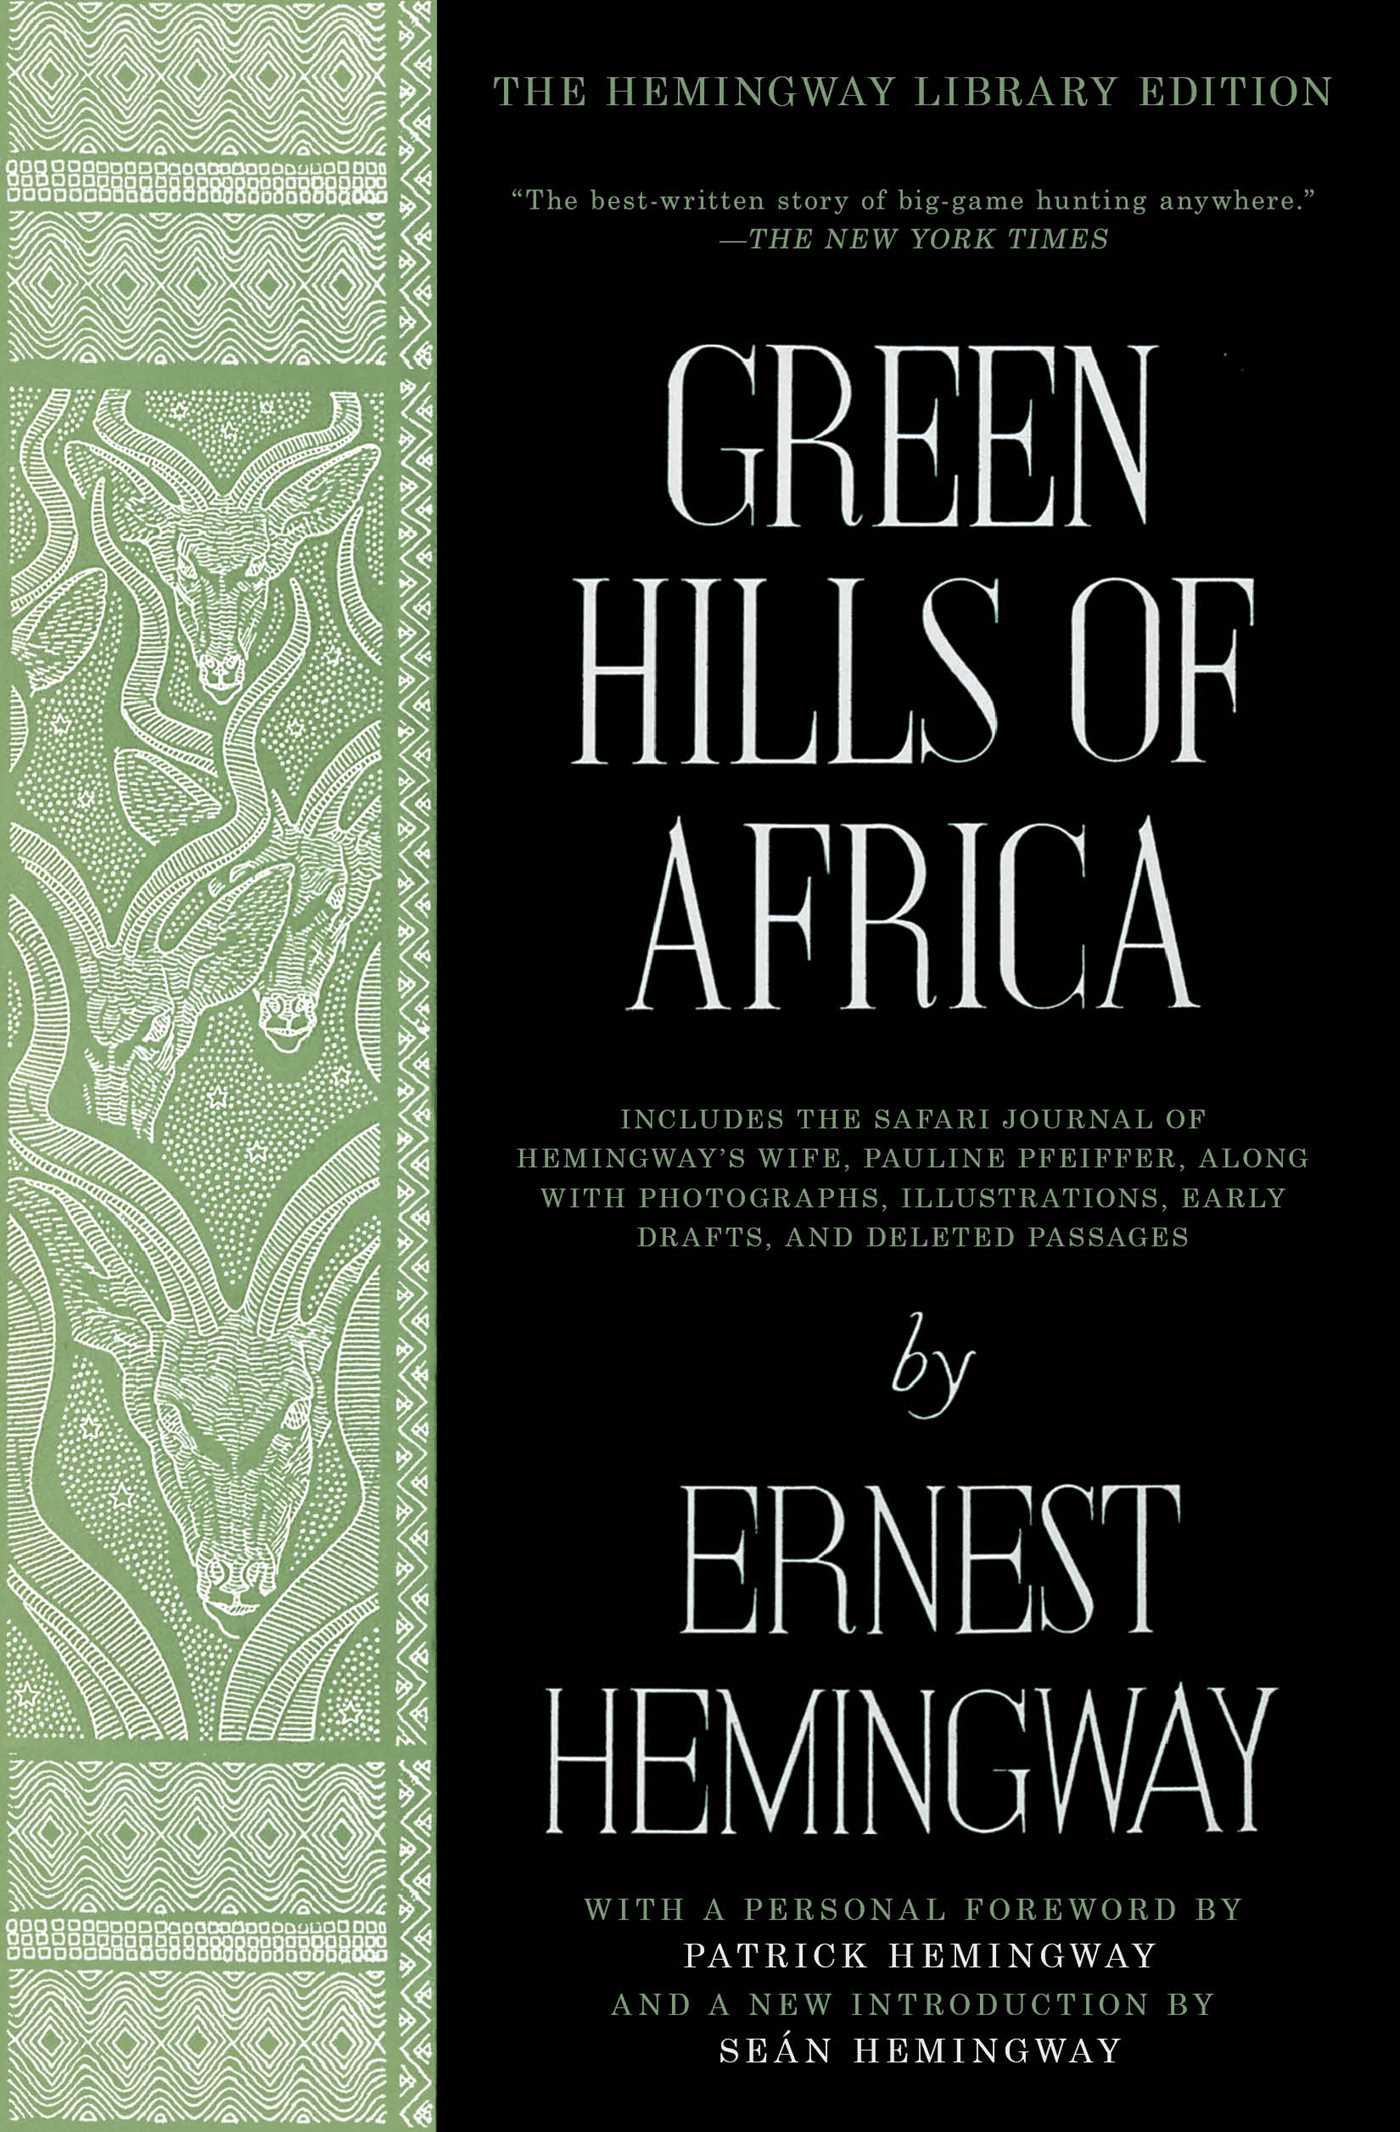 Green hills of africa 9781476787589 hr